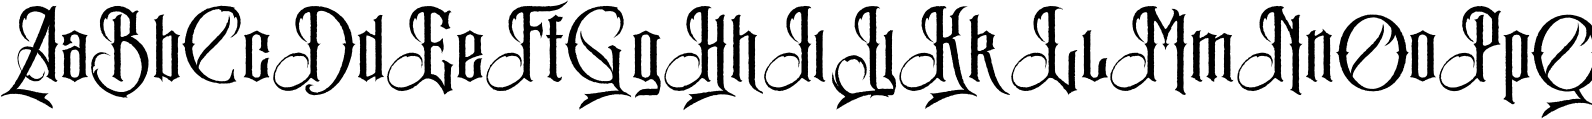 The mariam rough Font